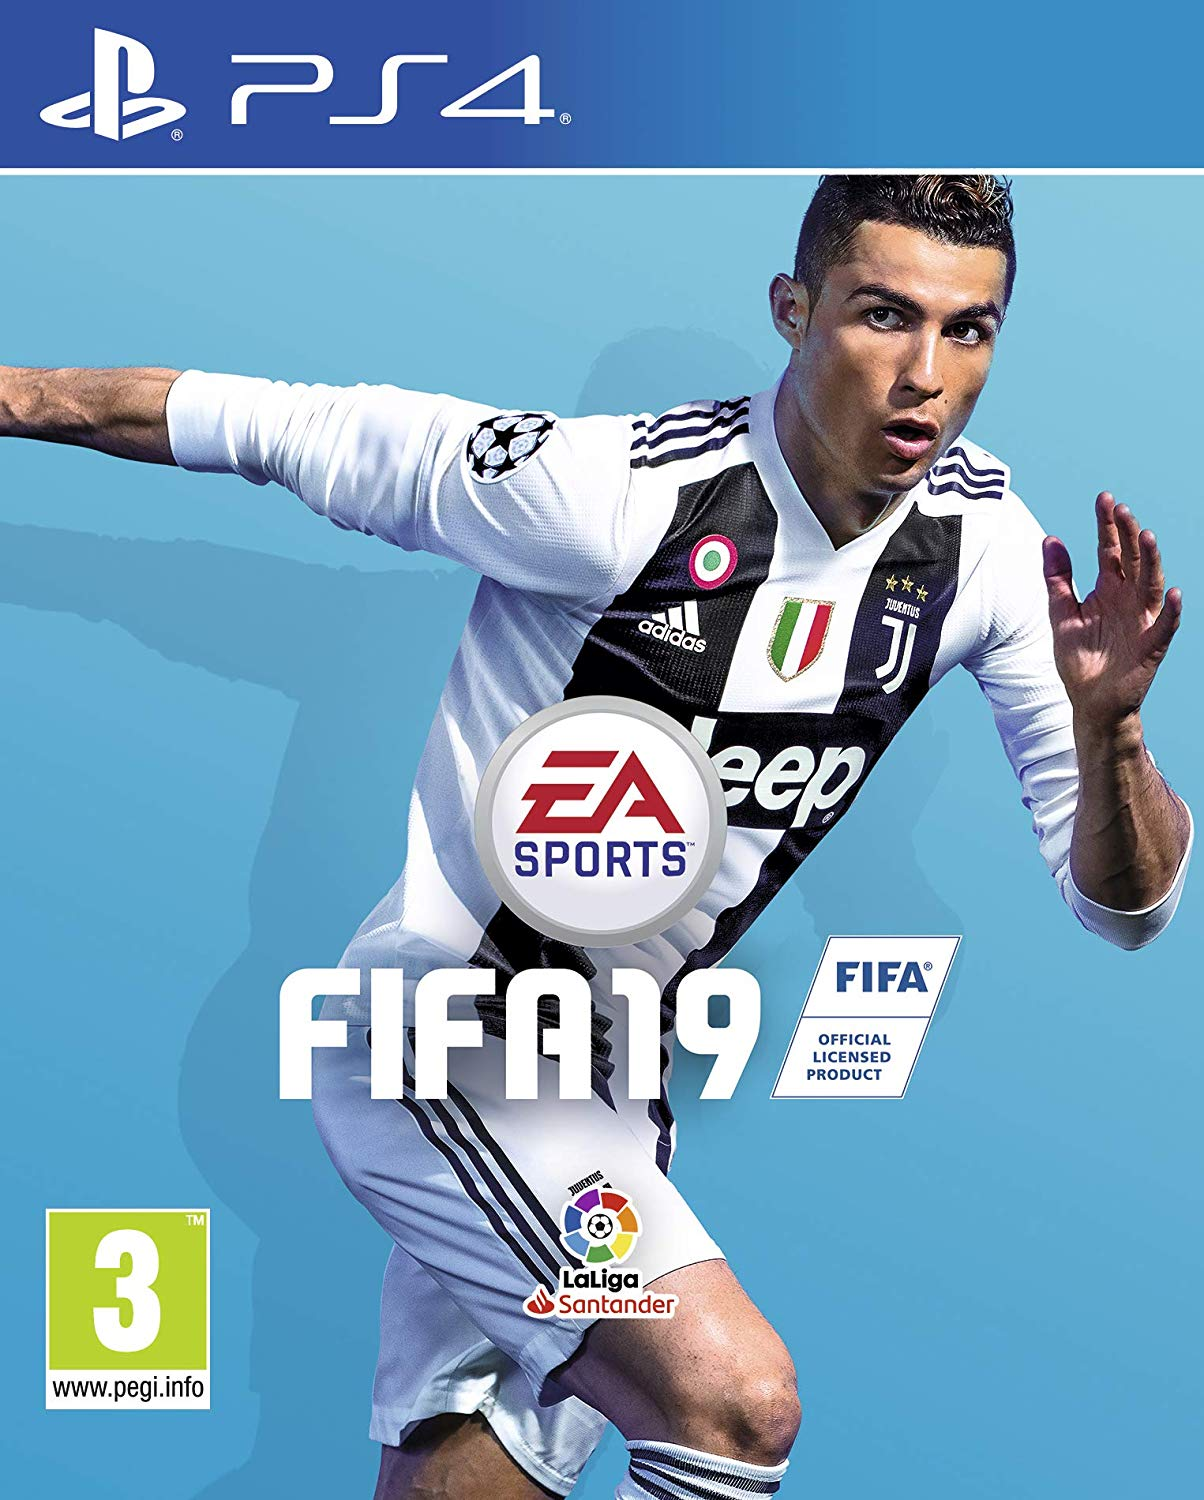 PS4 EA Sports FIFA 19 em Español (PlayStation 4)